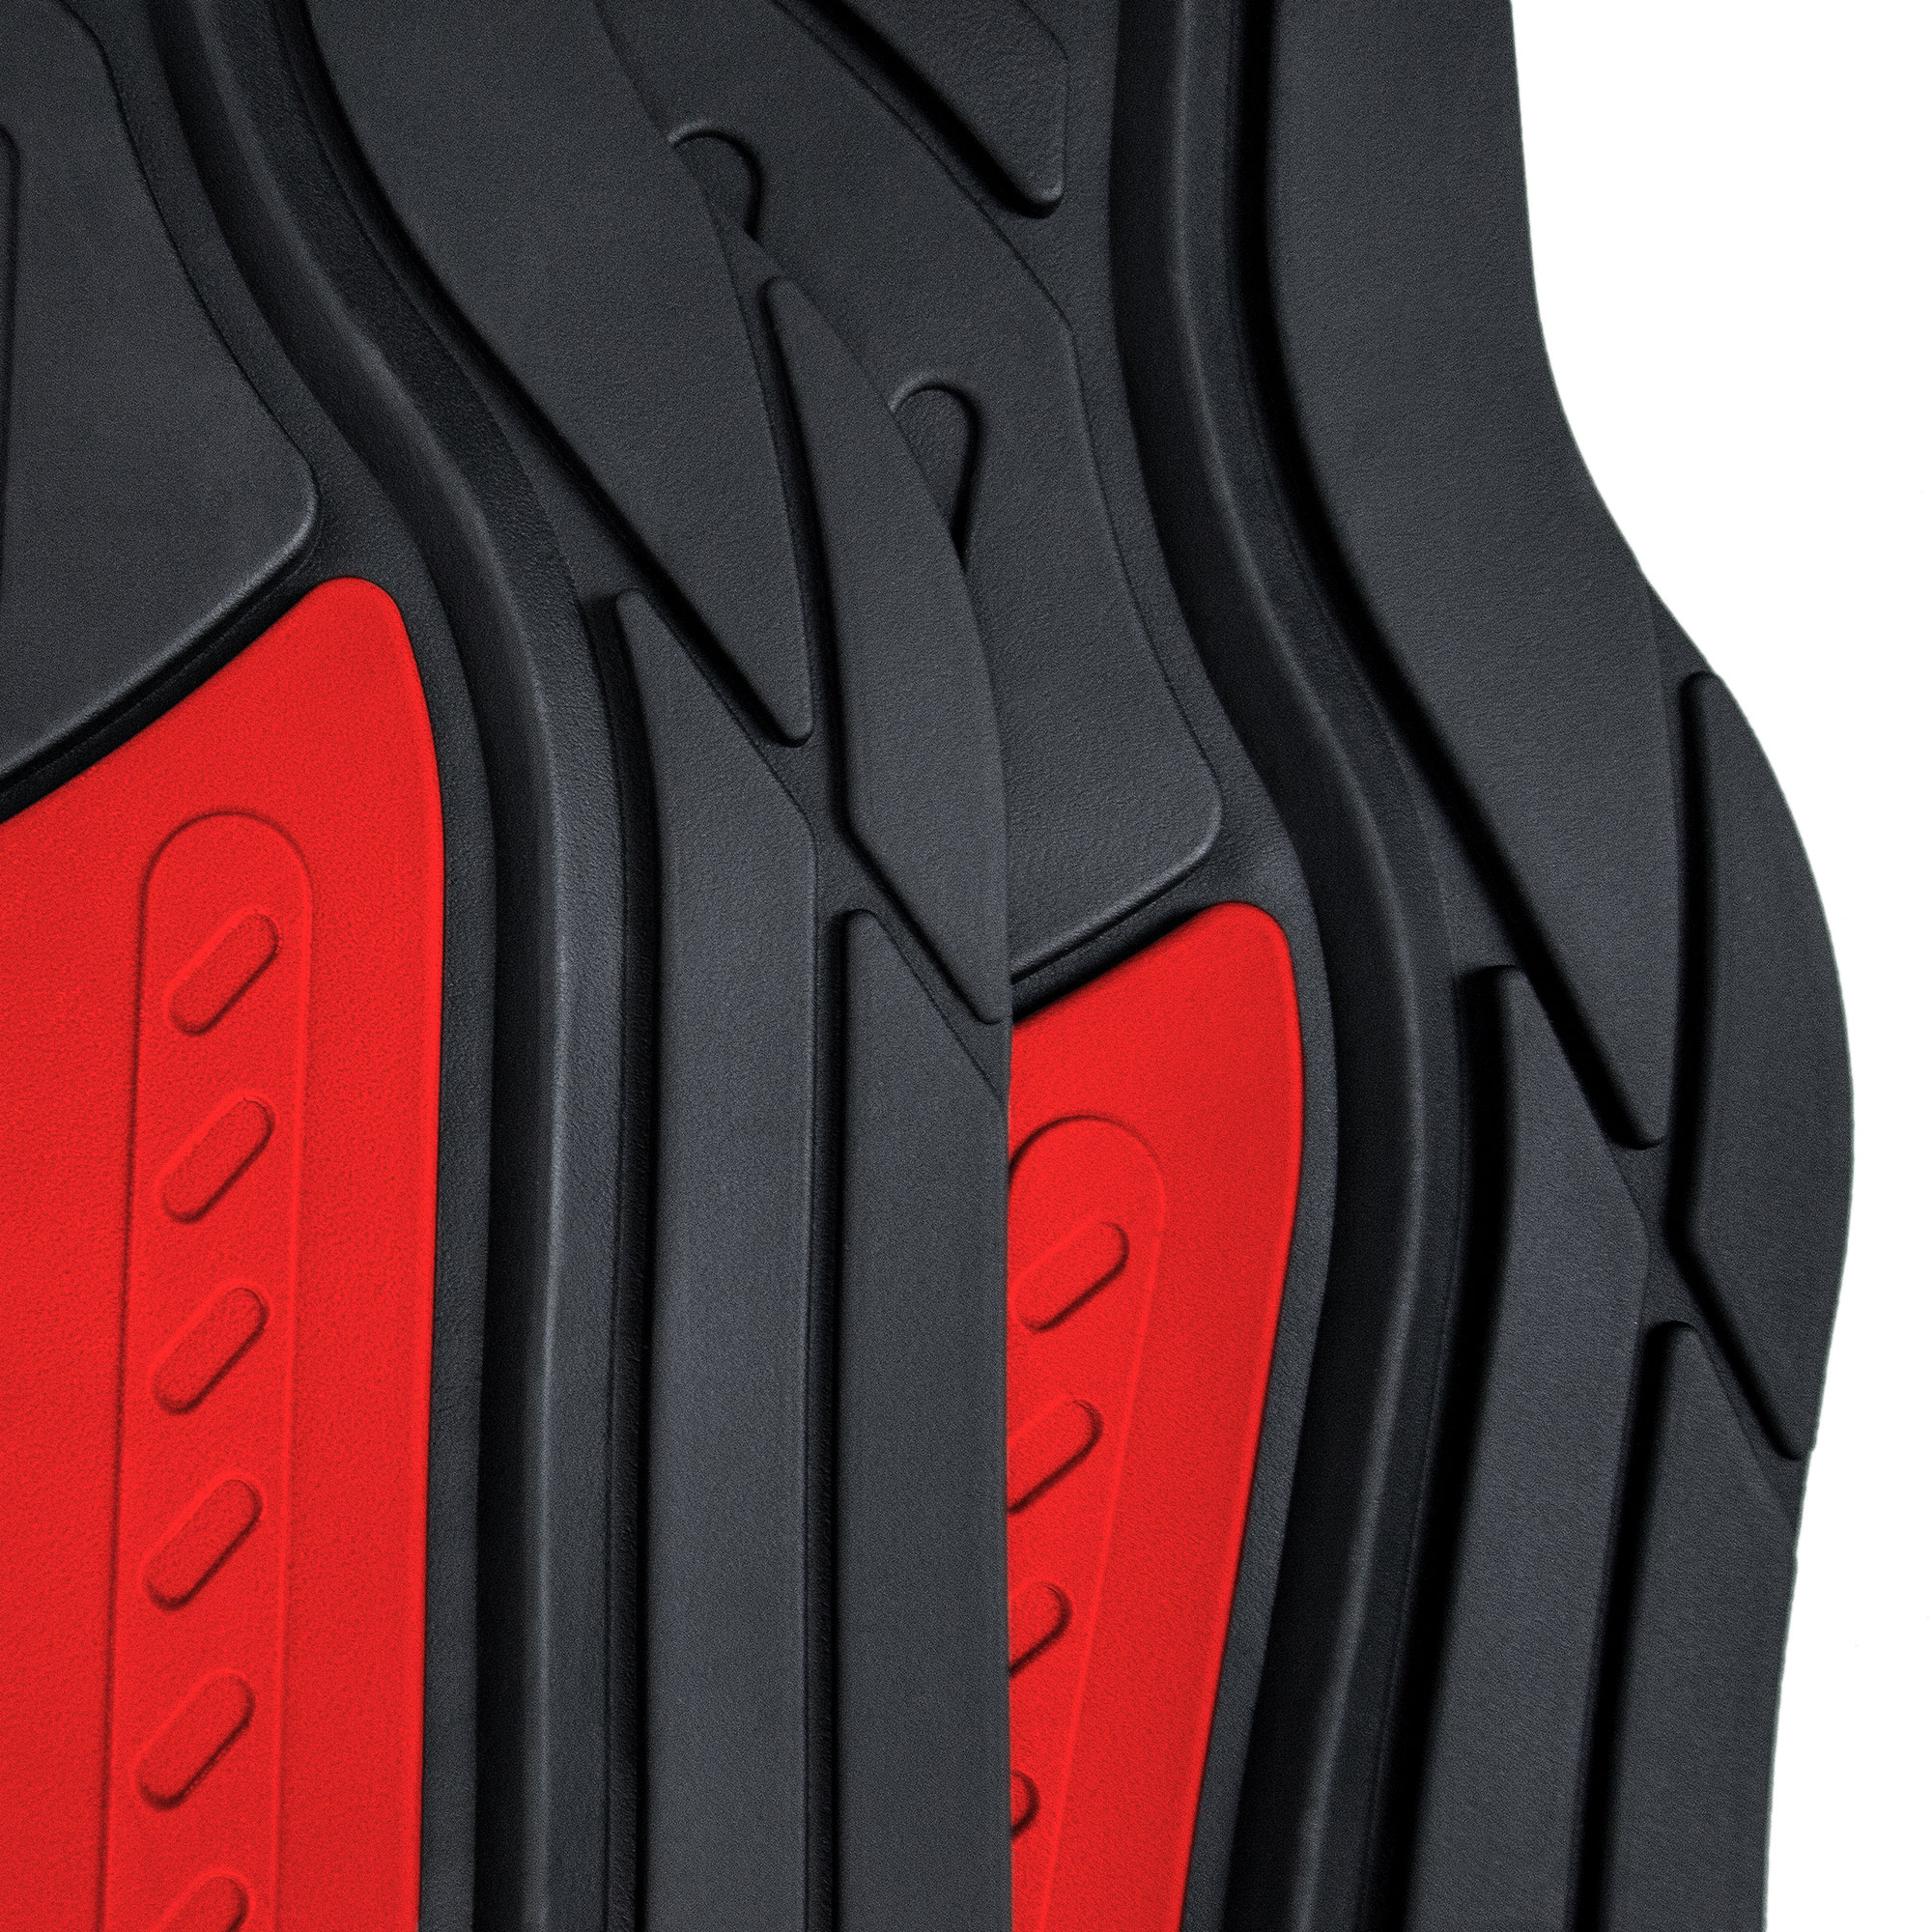 Car-Floor-Mats-for-All-Weather-Rubber-2-Tone-Design-4pc-Set-Heavy-Duty thumbnail 33